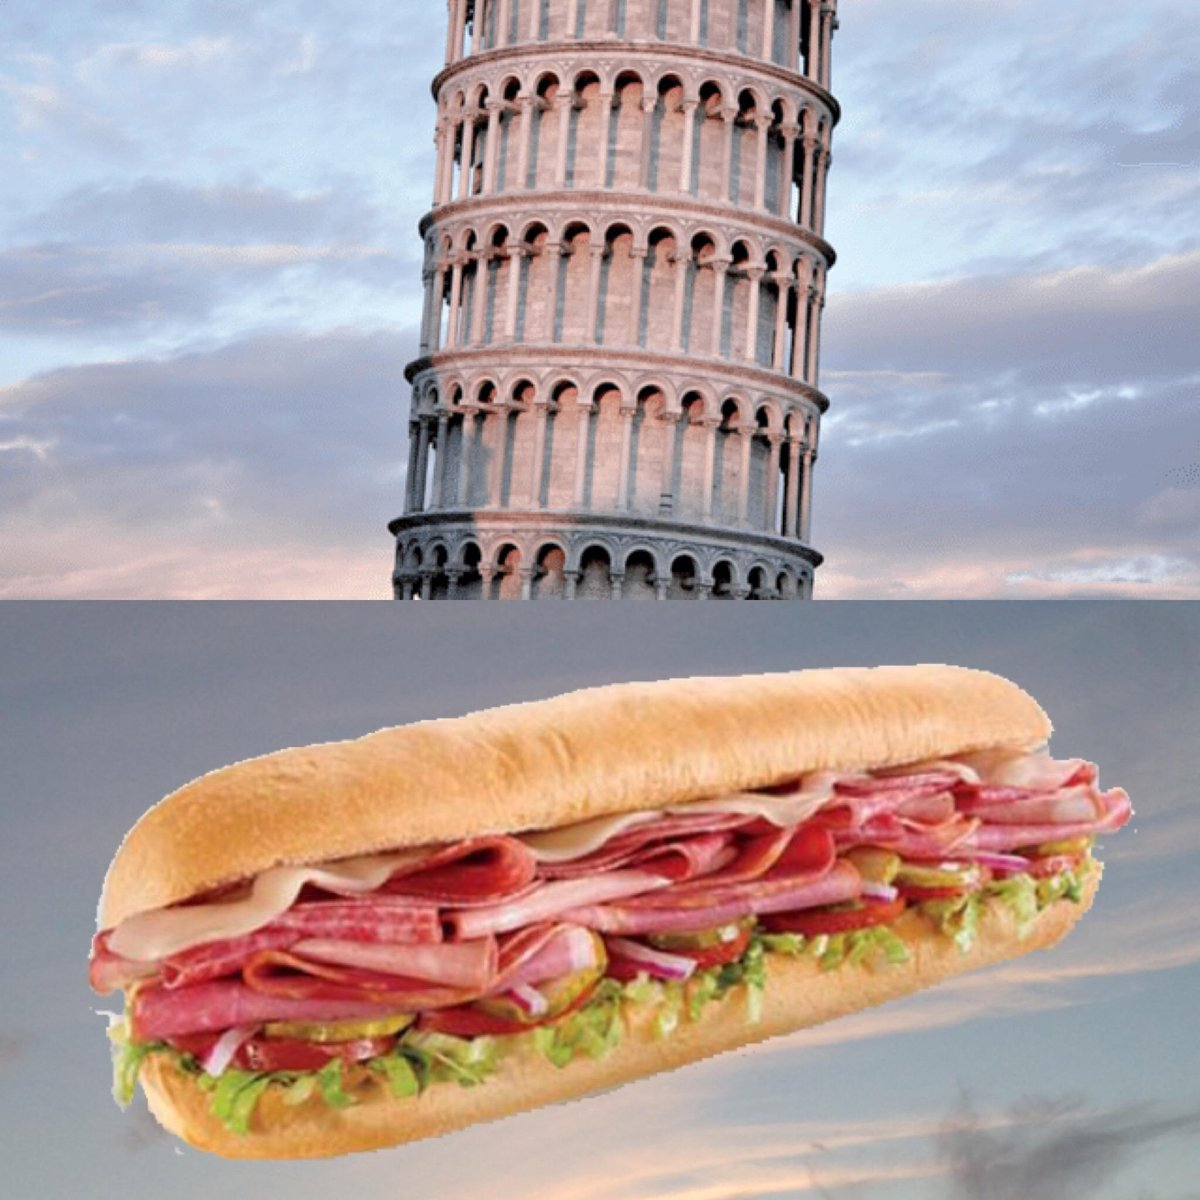 """Both are Italian Icons, but only one is at your local Subway! Catch the #ItalianHero before it says """"Ciao!"""" on 10/11! http://t.co/VCnHgGaKud"""